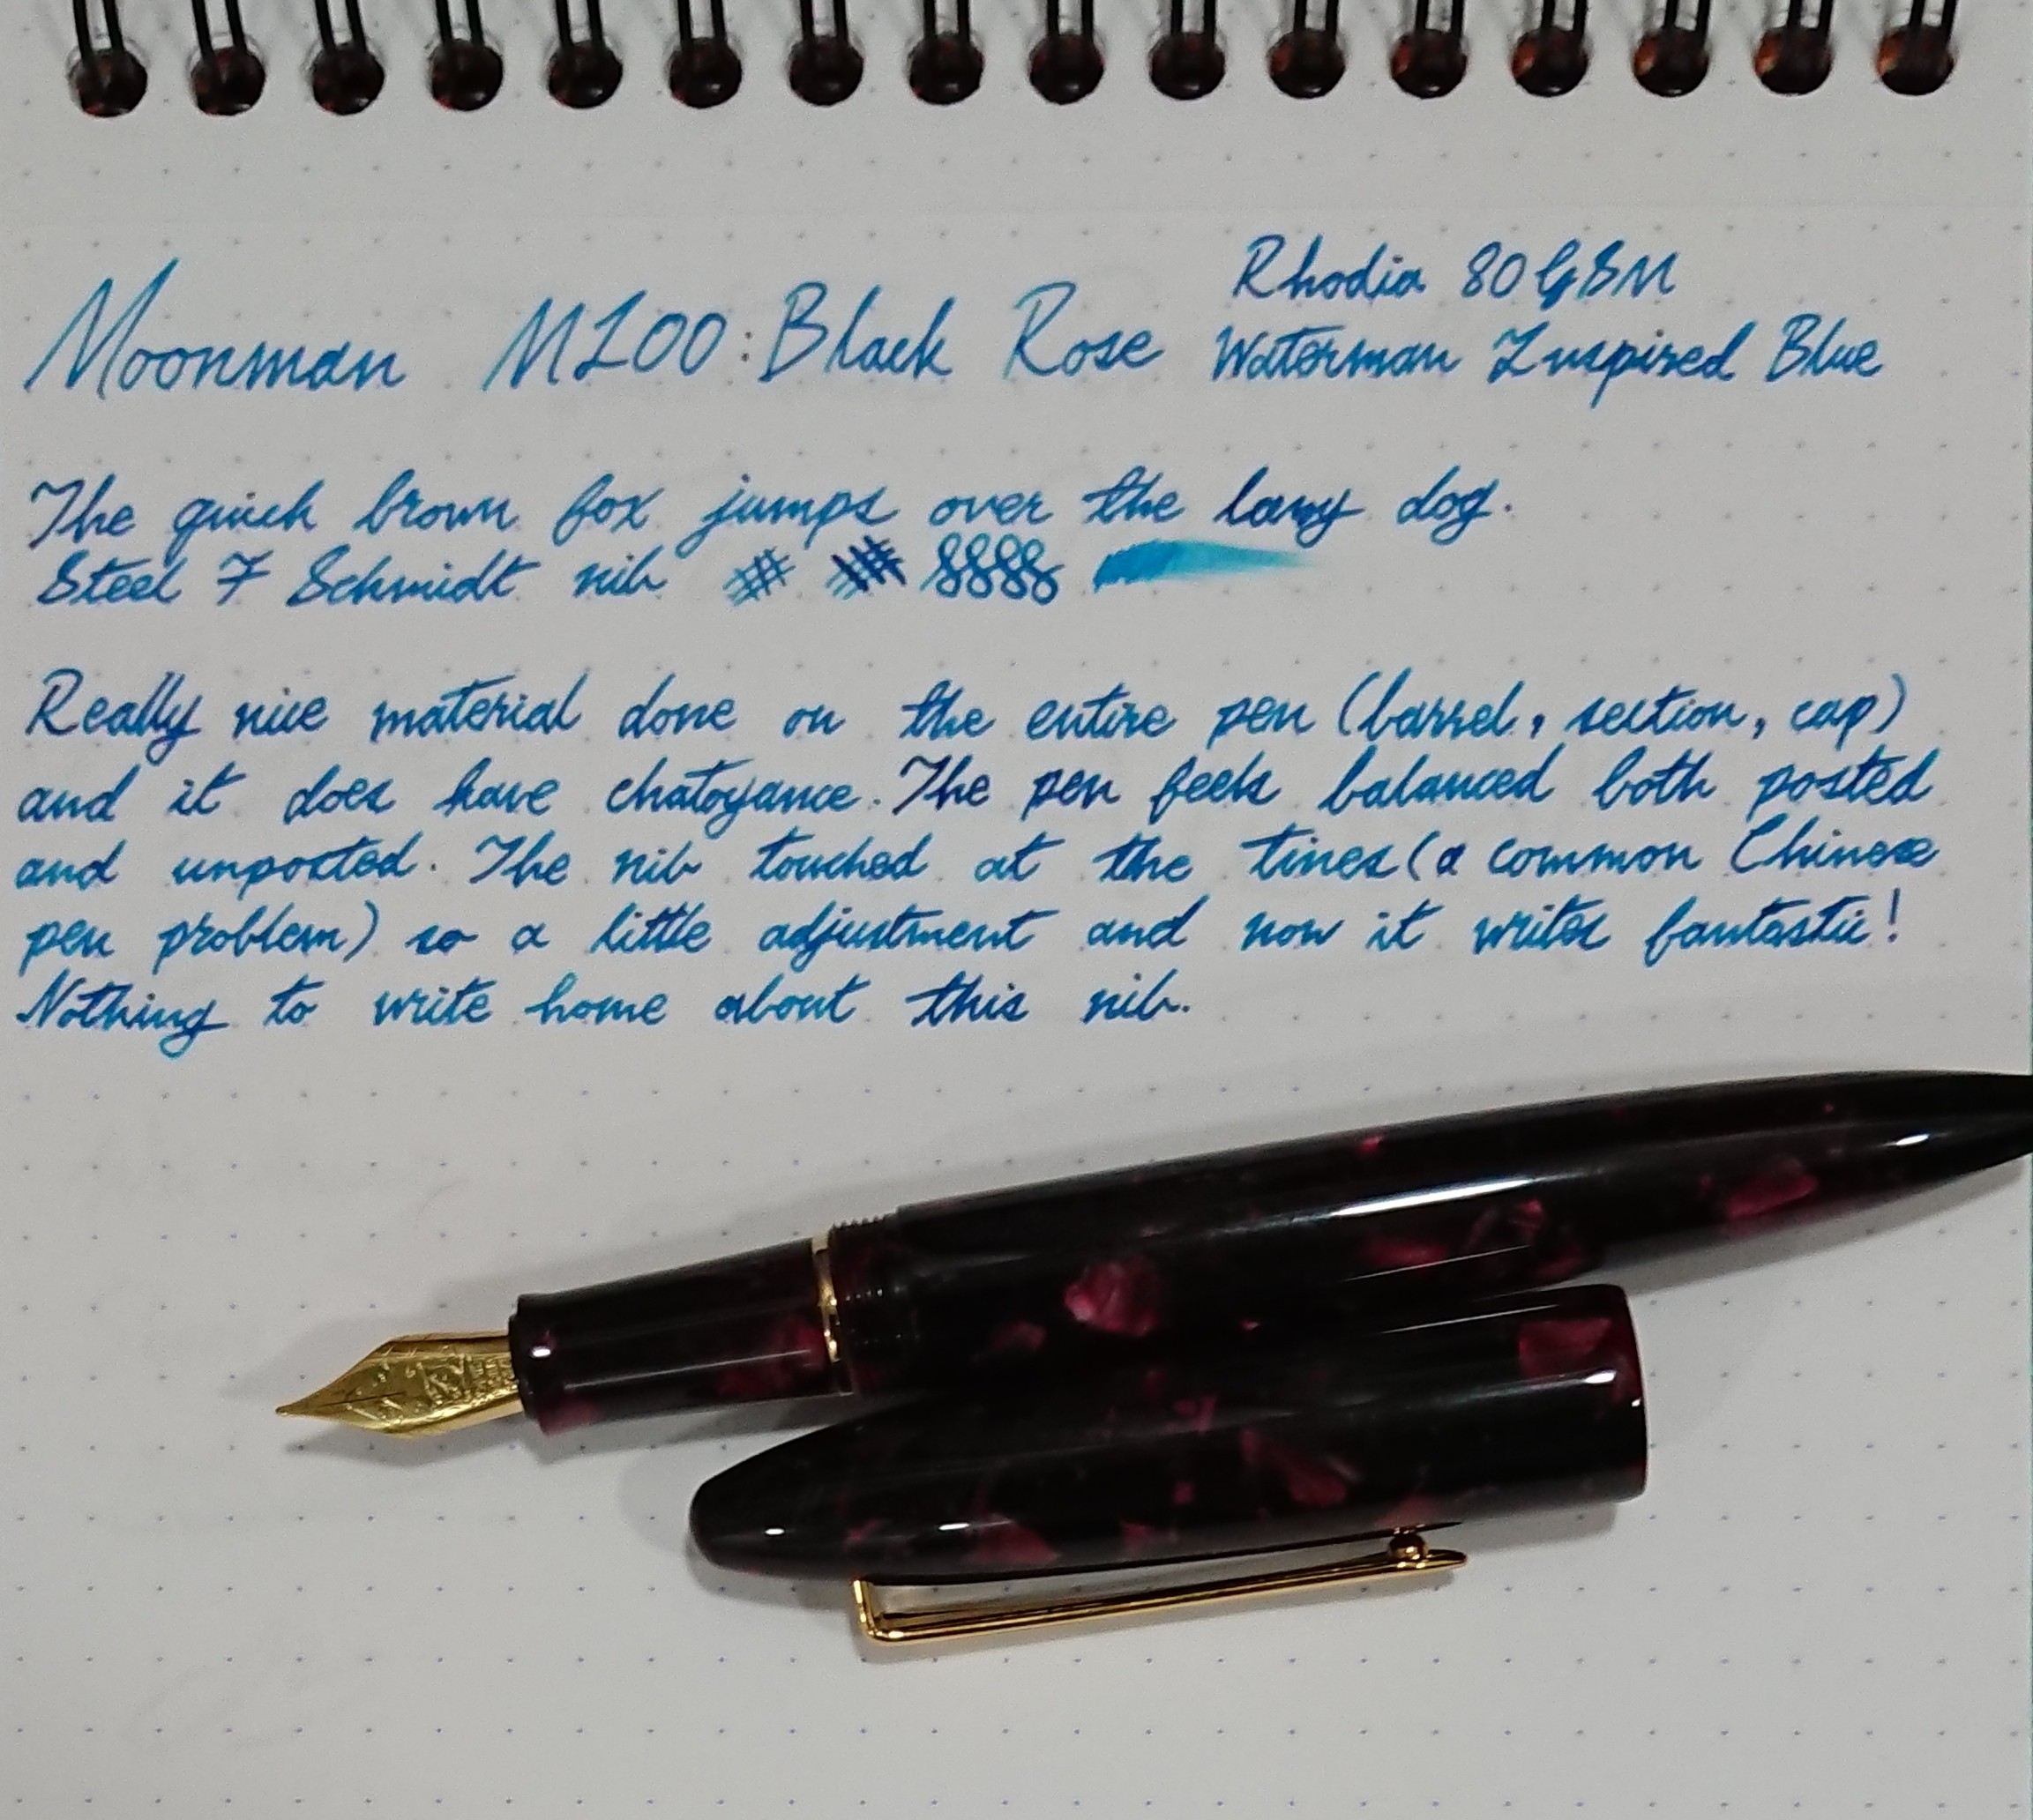 Moonman M100 writing sample